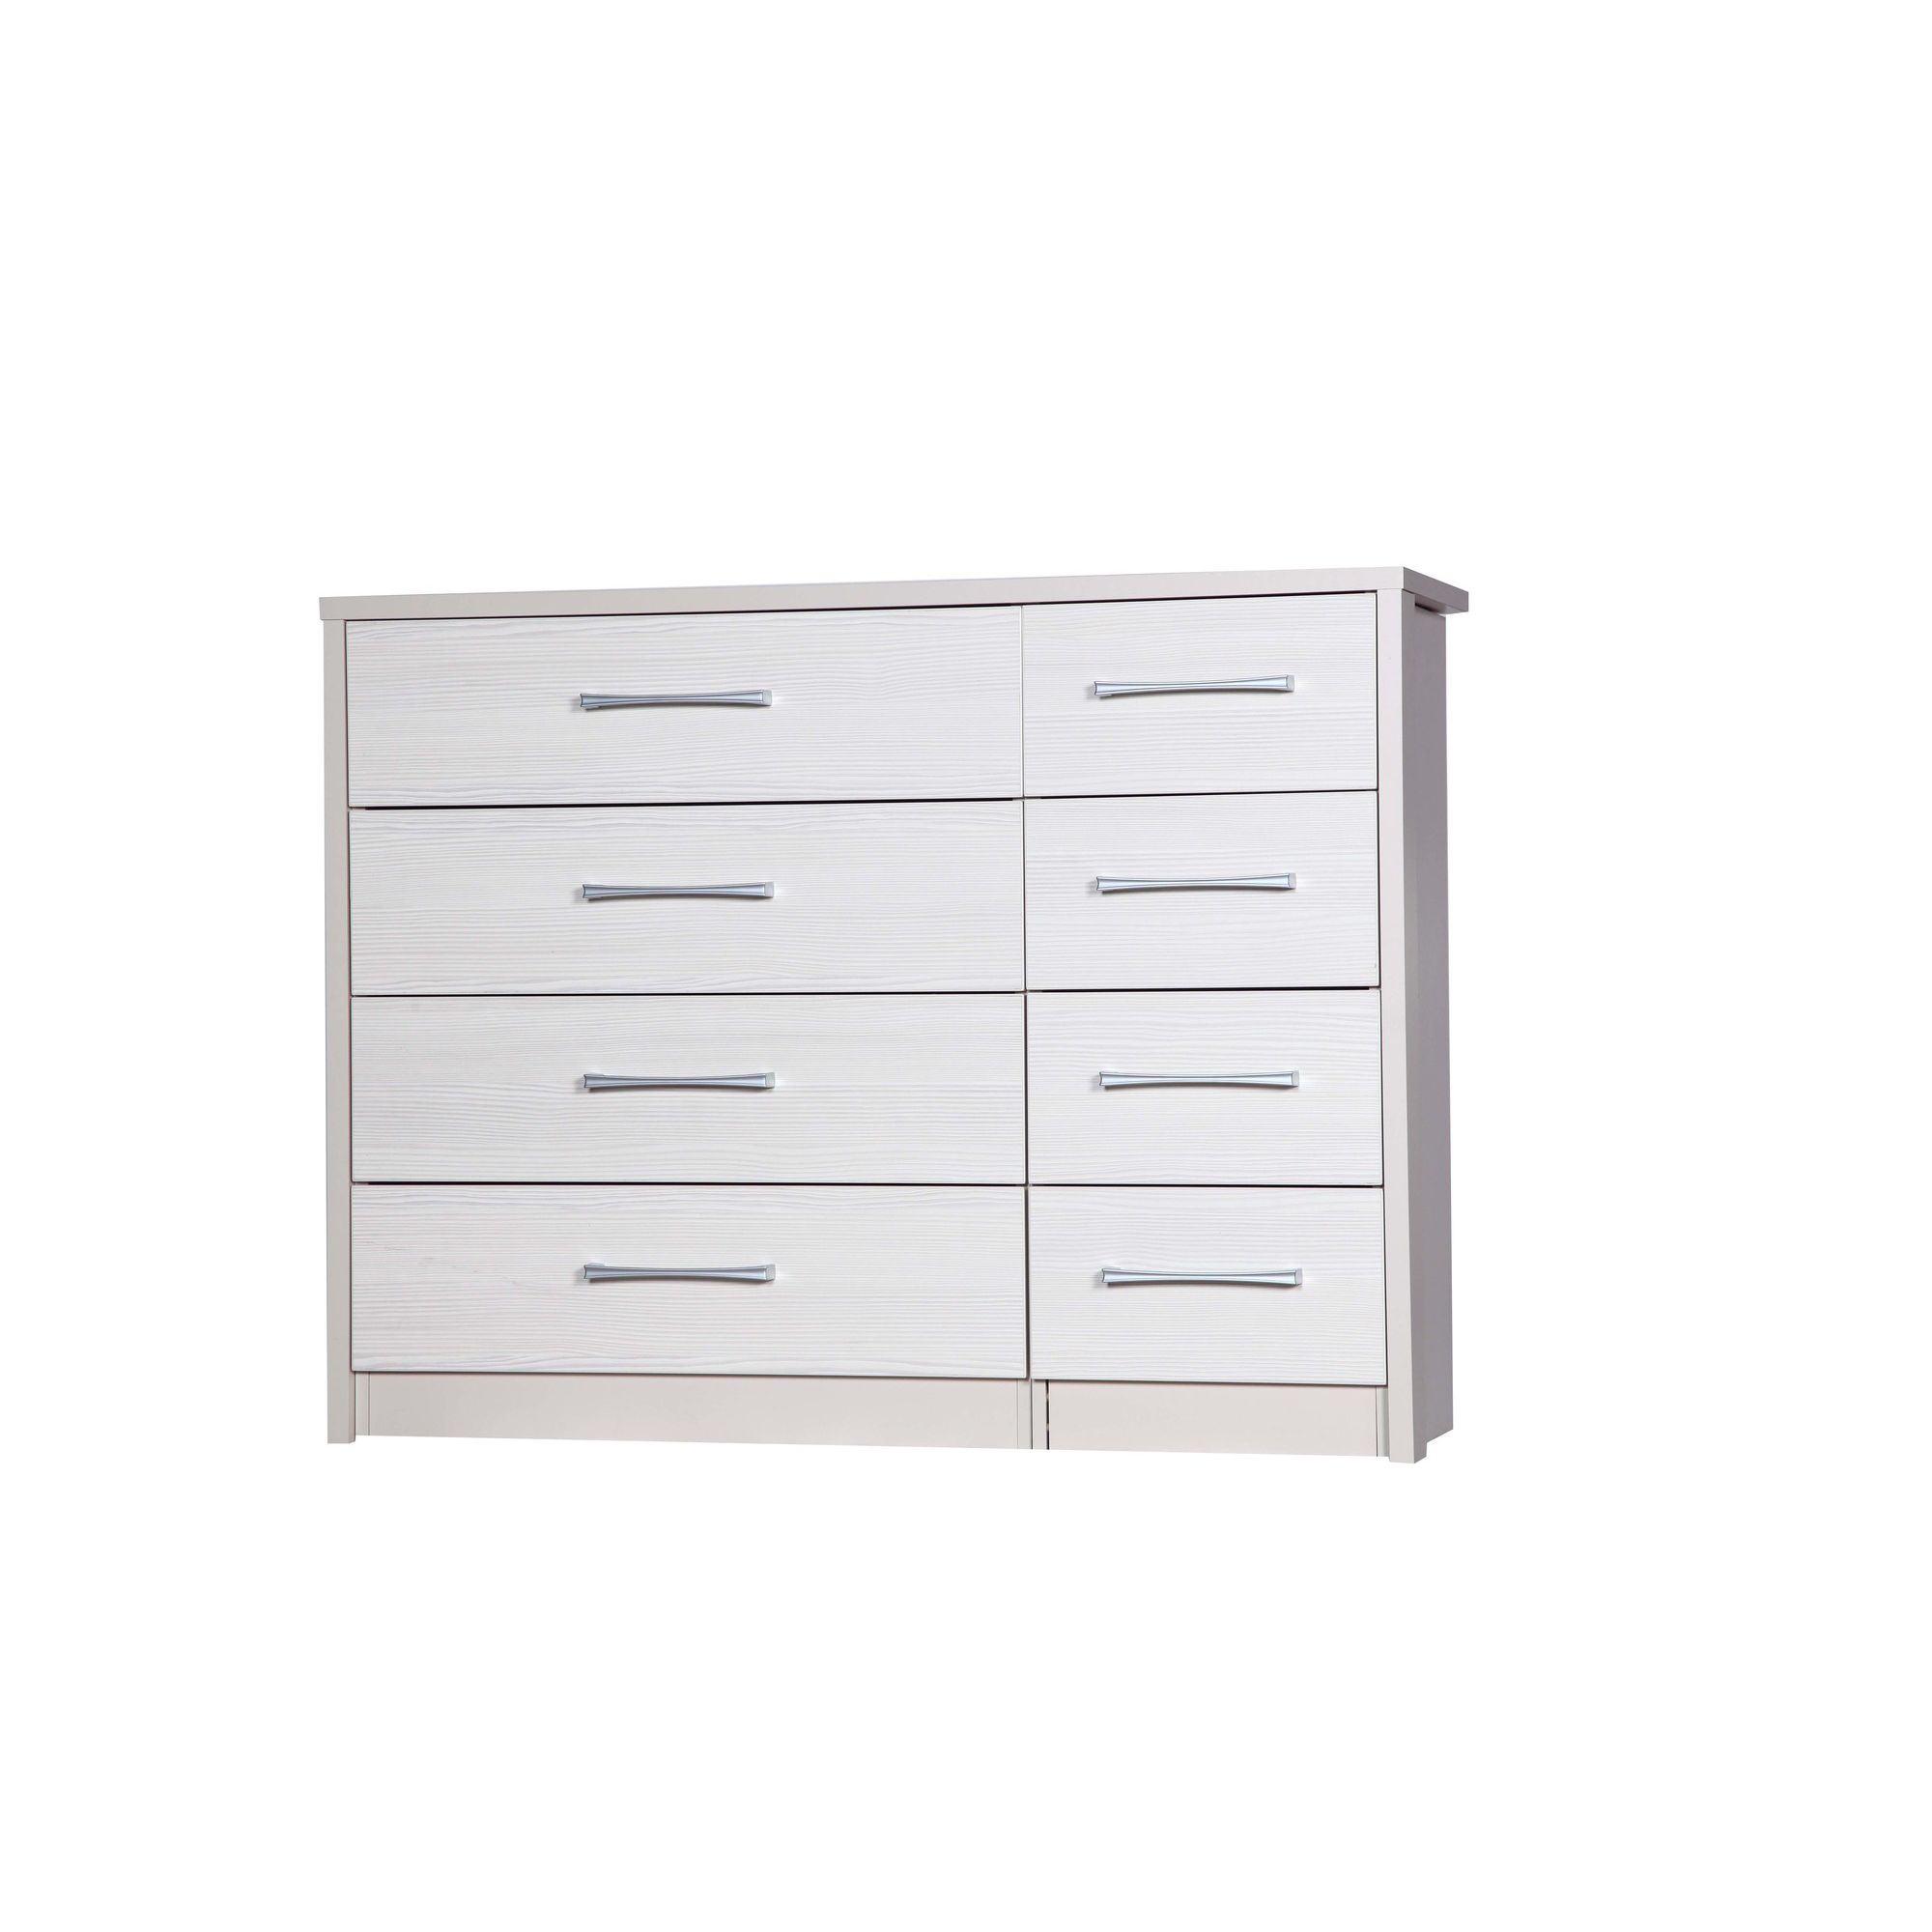 Alto Furniture Avola 8 Drawer Double Chest - Cream Carcass With White Avola at Tesco Direct